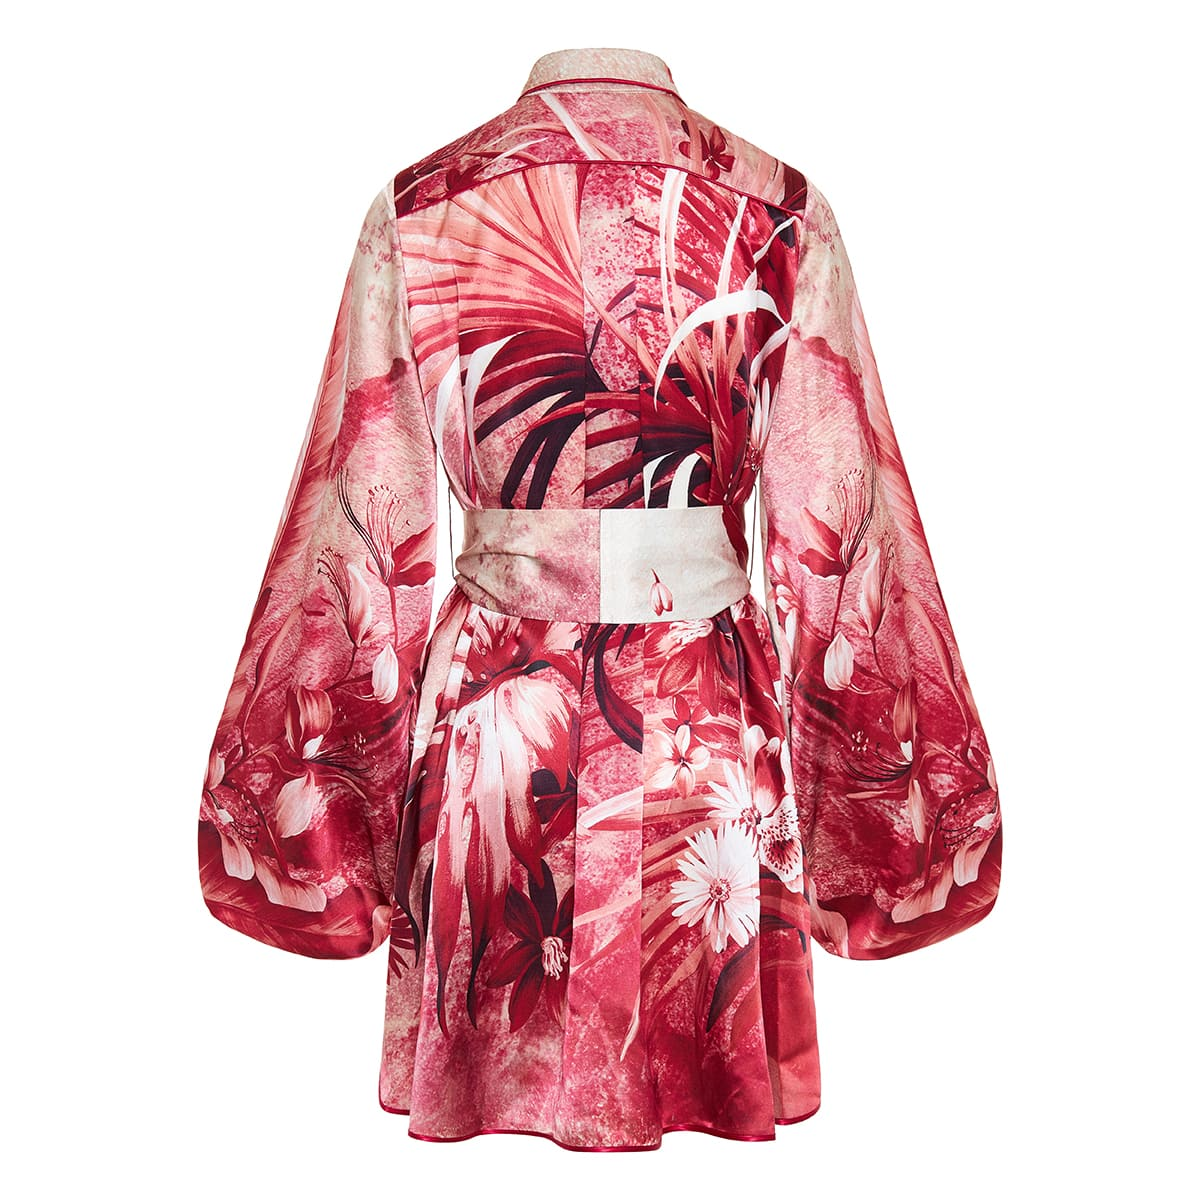 Archidemia printed mini shirt dress